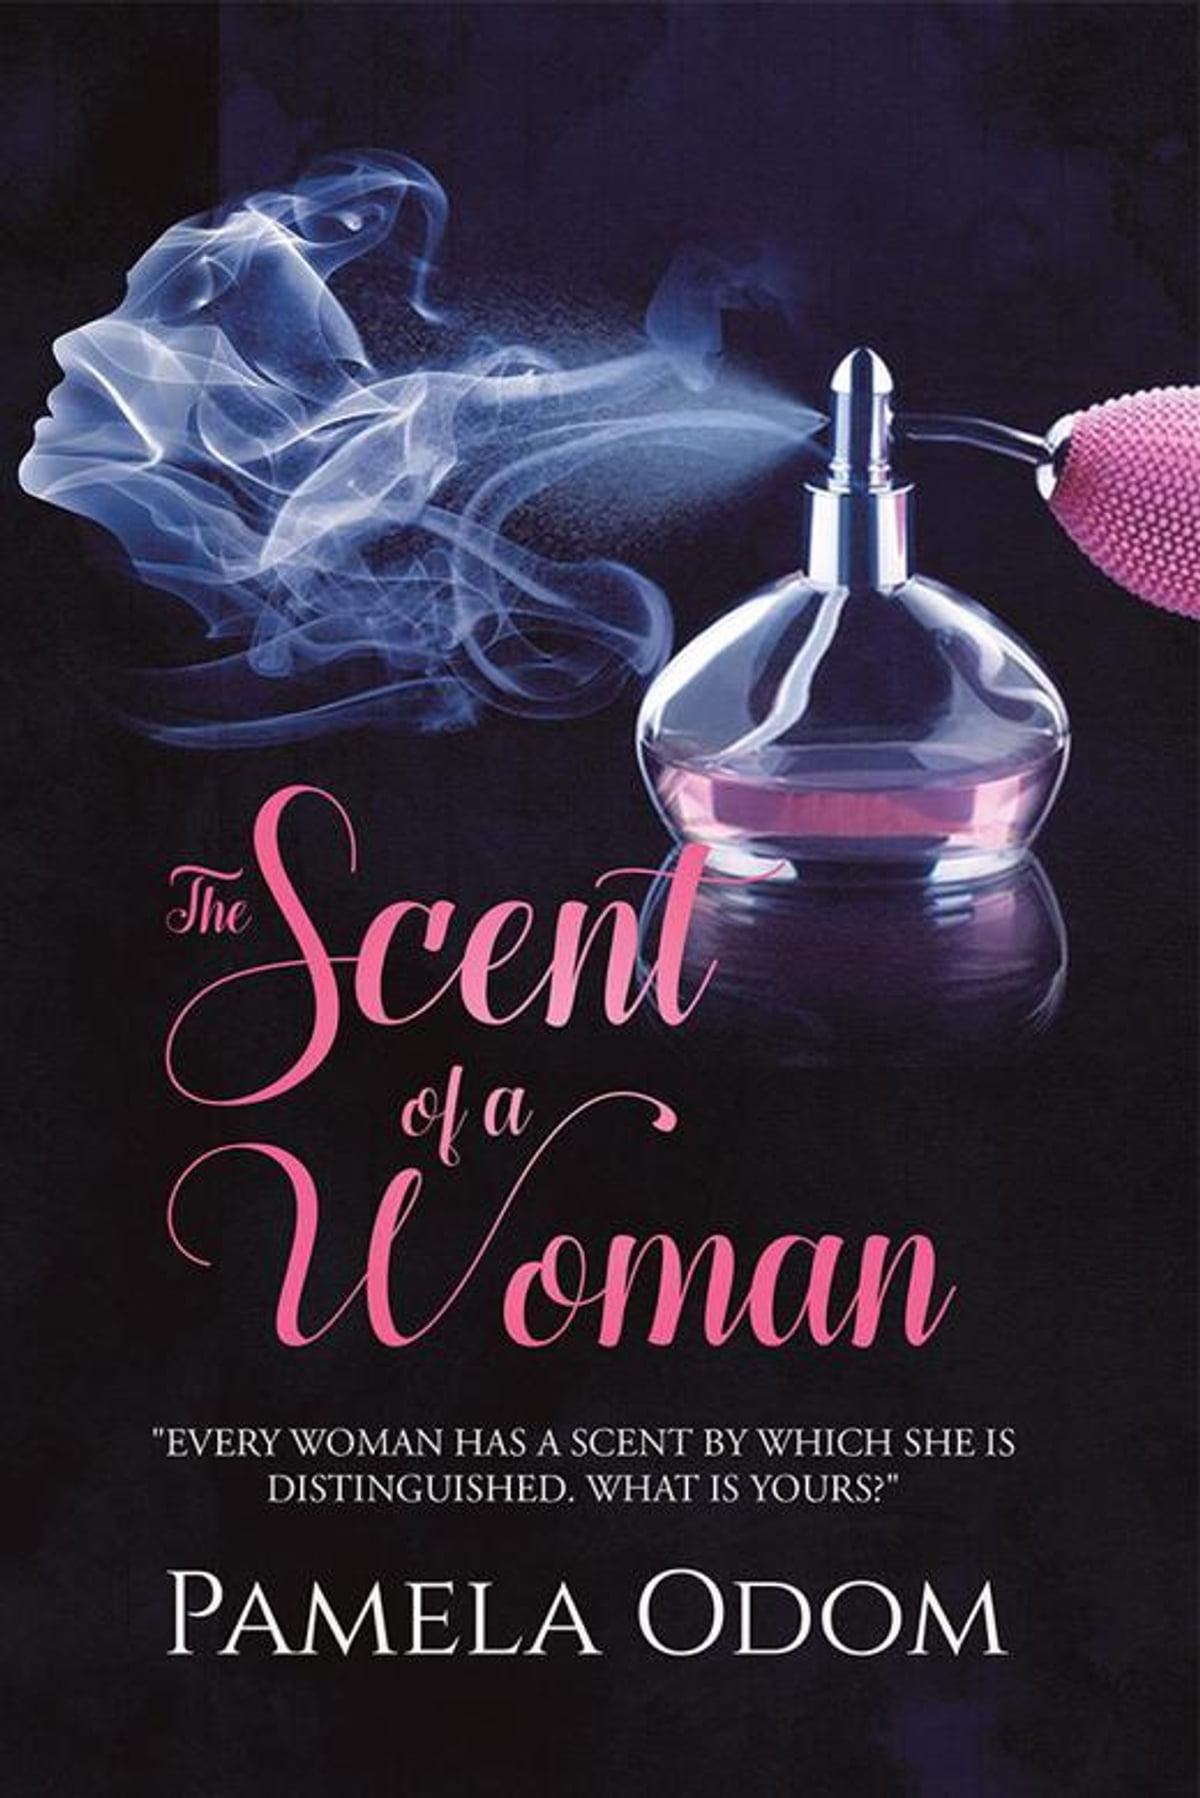 The Scent Of A Woman Ebook By Pamela Odom 9781543444421 Rakuten Kobo United States